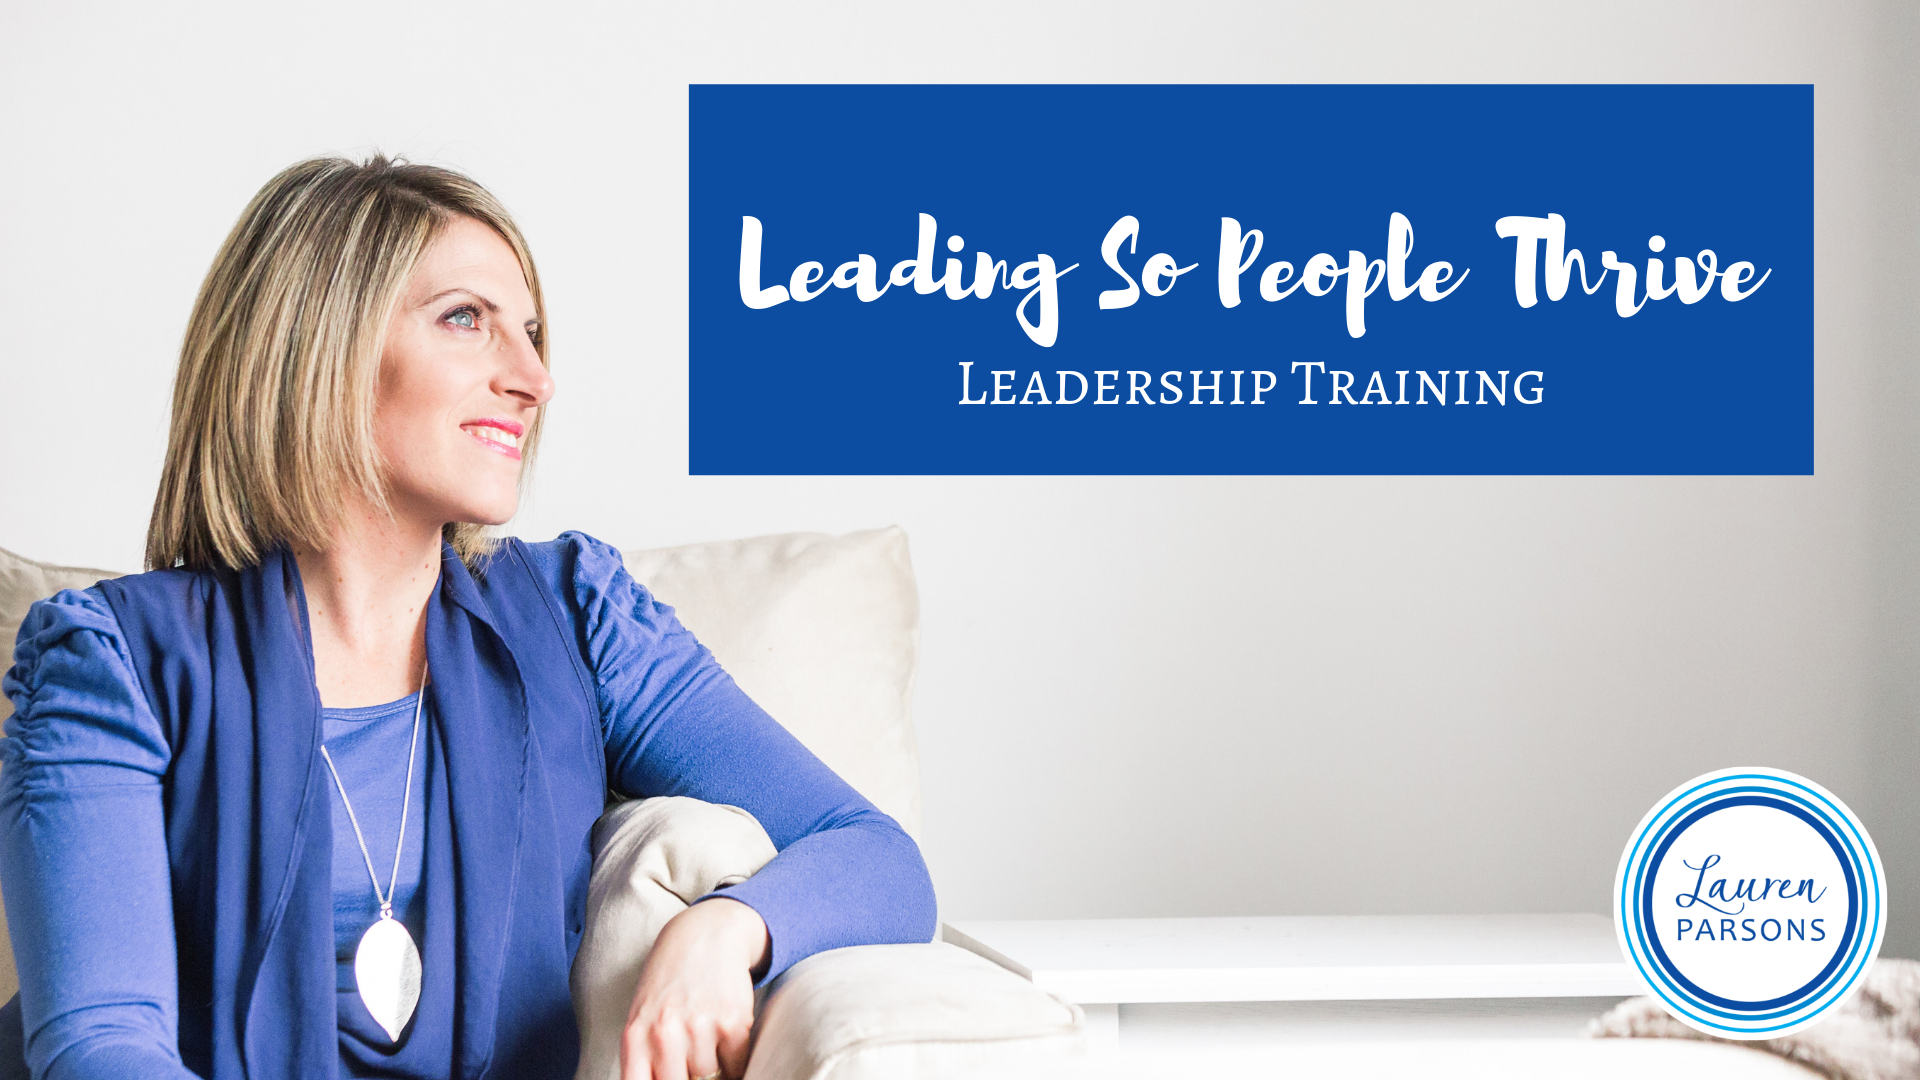 Leadership Training Health and Wellbeing Lauren Parsons